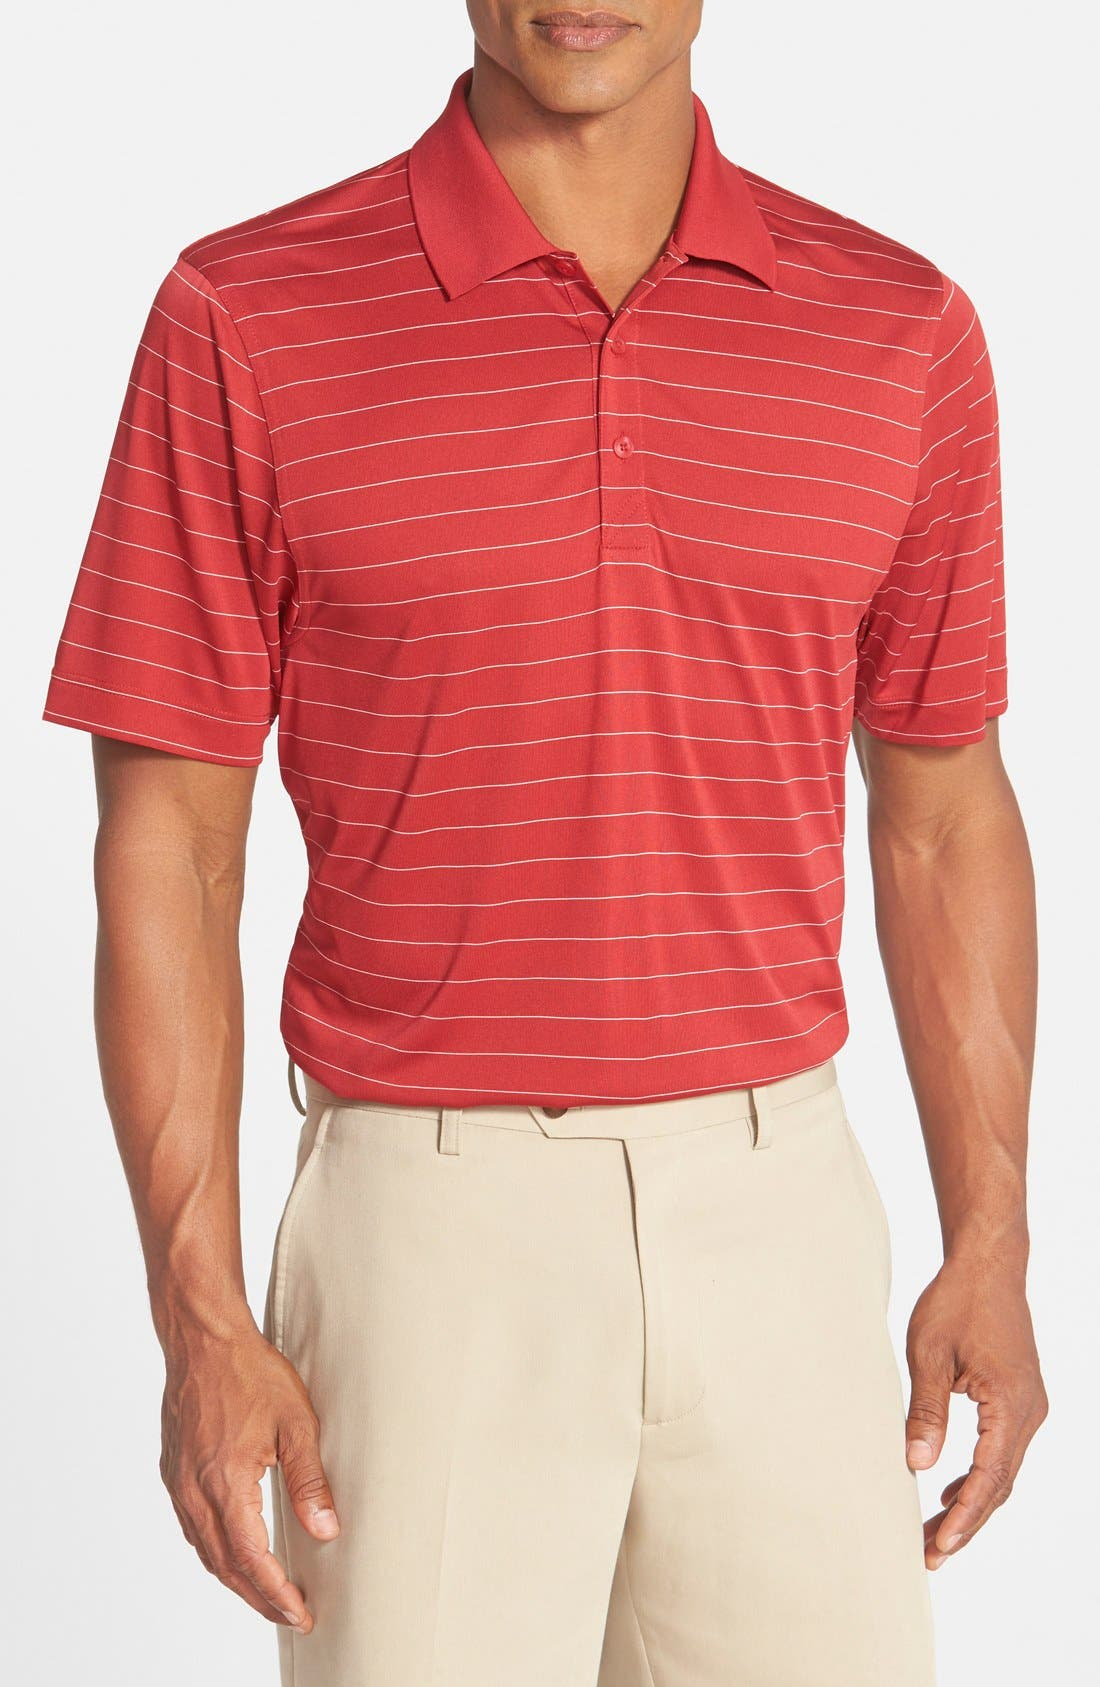 Alternate Image 1 Selected - Cutter & Buck Franklin DryTec Polo (Online Only)